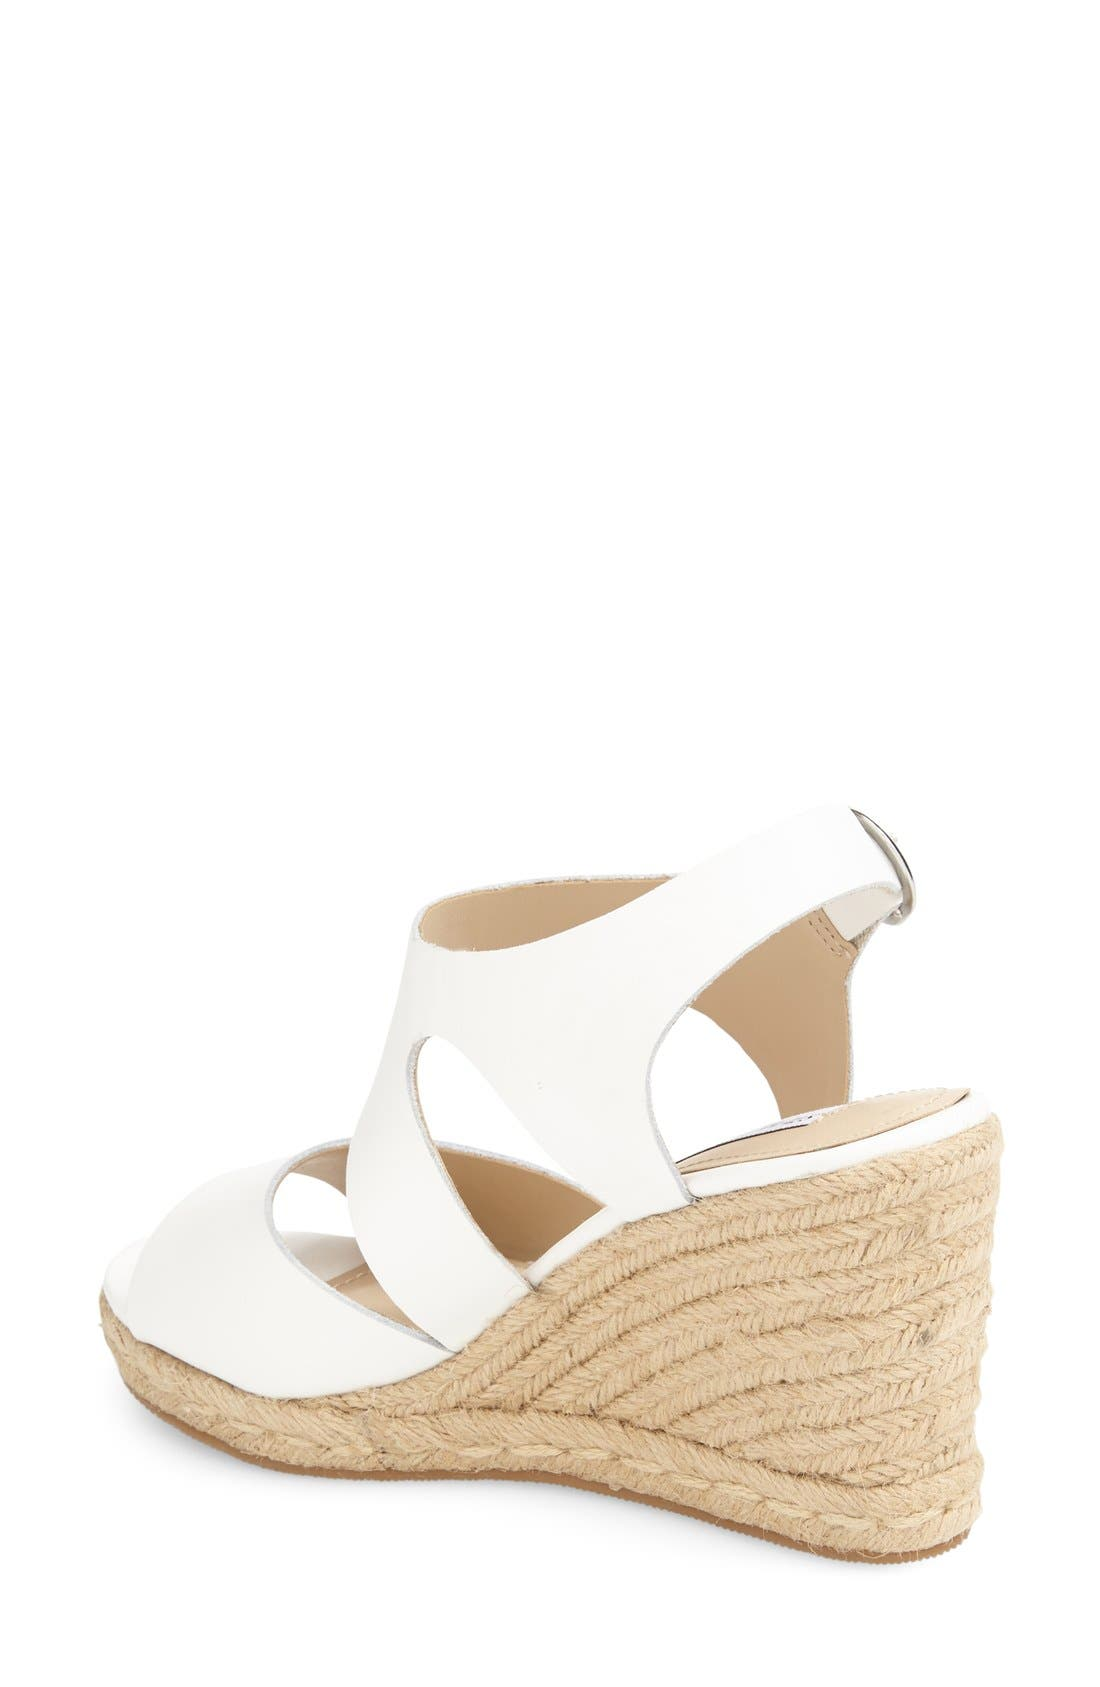 Alternate Image 2  - Steve Madden 'Wavi' Espadrille Wedge Sandal (Women)